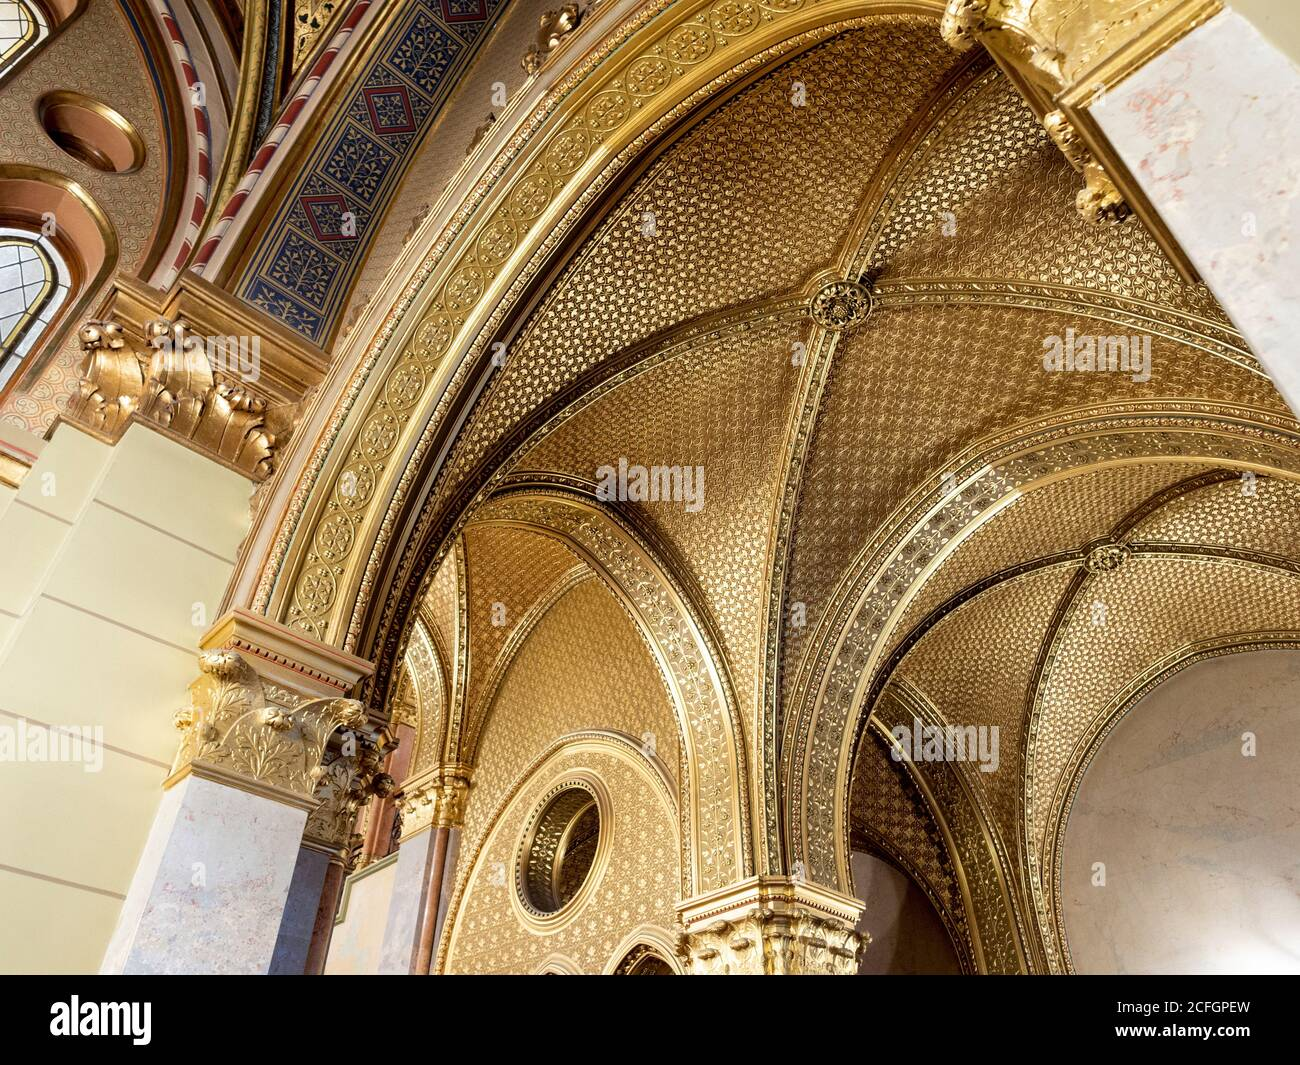 Golden Ceiling In The Hungarian Parliament Building Gold Decorates The Arches And Ceilings Of One Of The Stairways In The Massive Hungarian Parliament Building Stock Photo Alamy